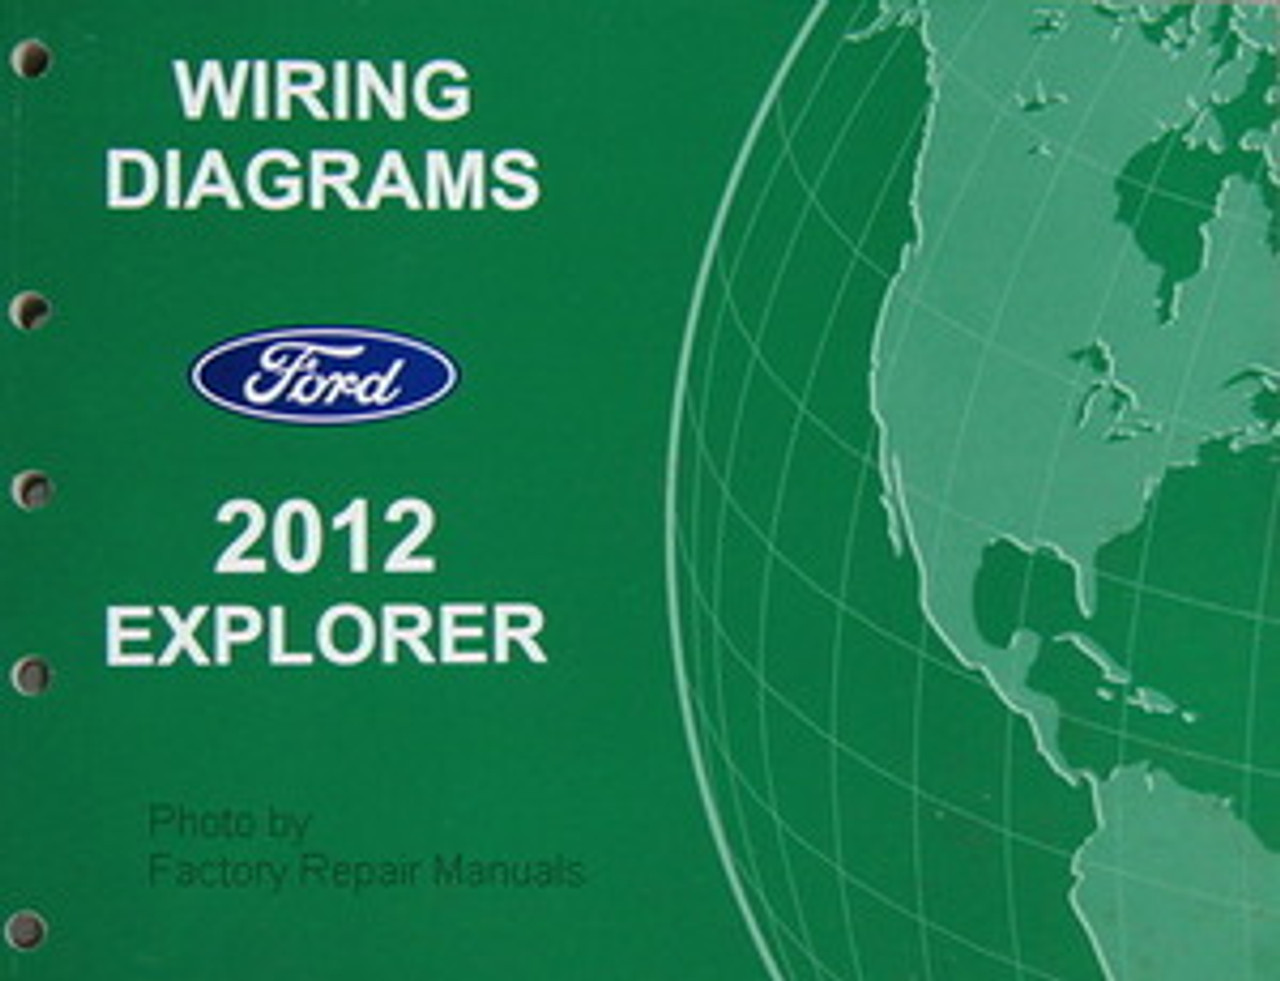 2012 Ford Explorer Electrical Wiring Diagrams Original - Factory Repair  ManualsFactory Repair Manuals